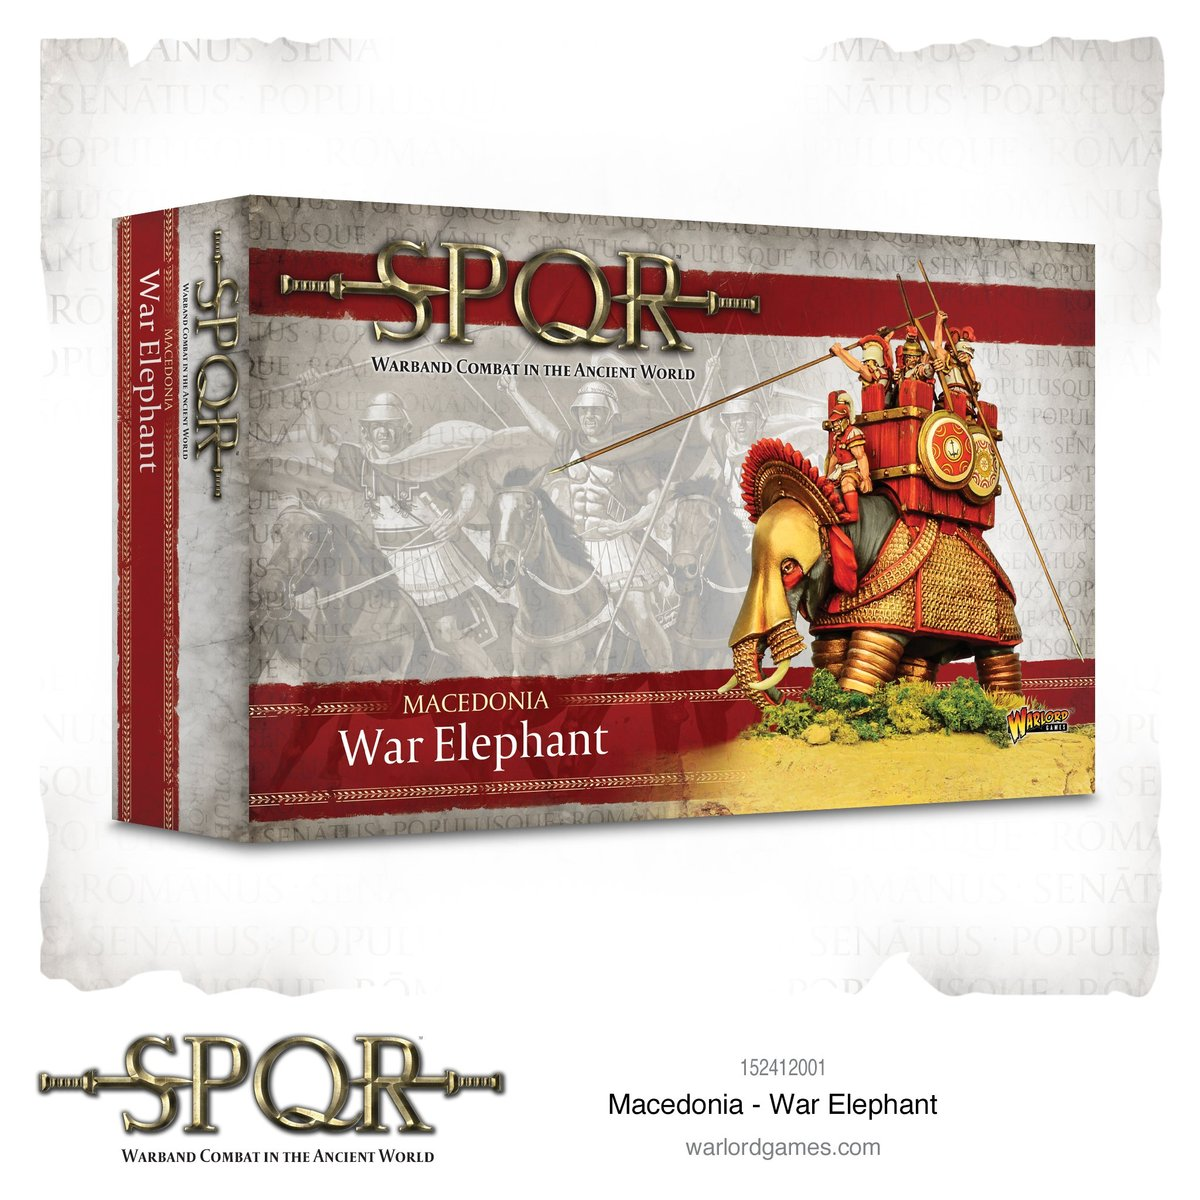 Box containing 1 SPQR Macedonian War Elephant from Warlord Games